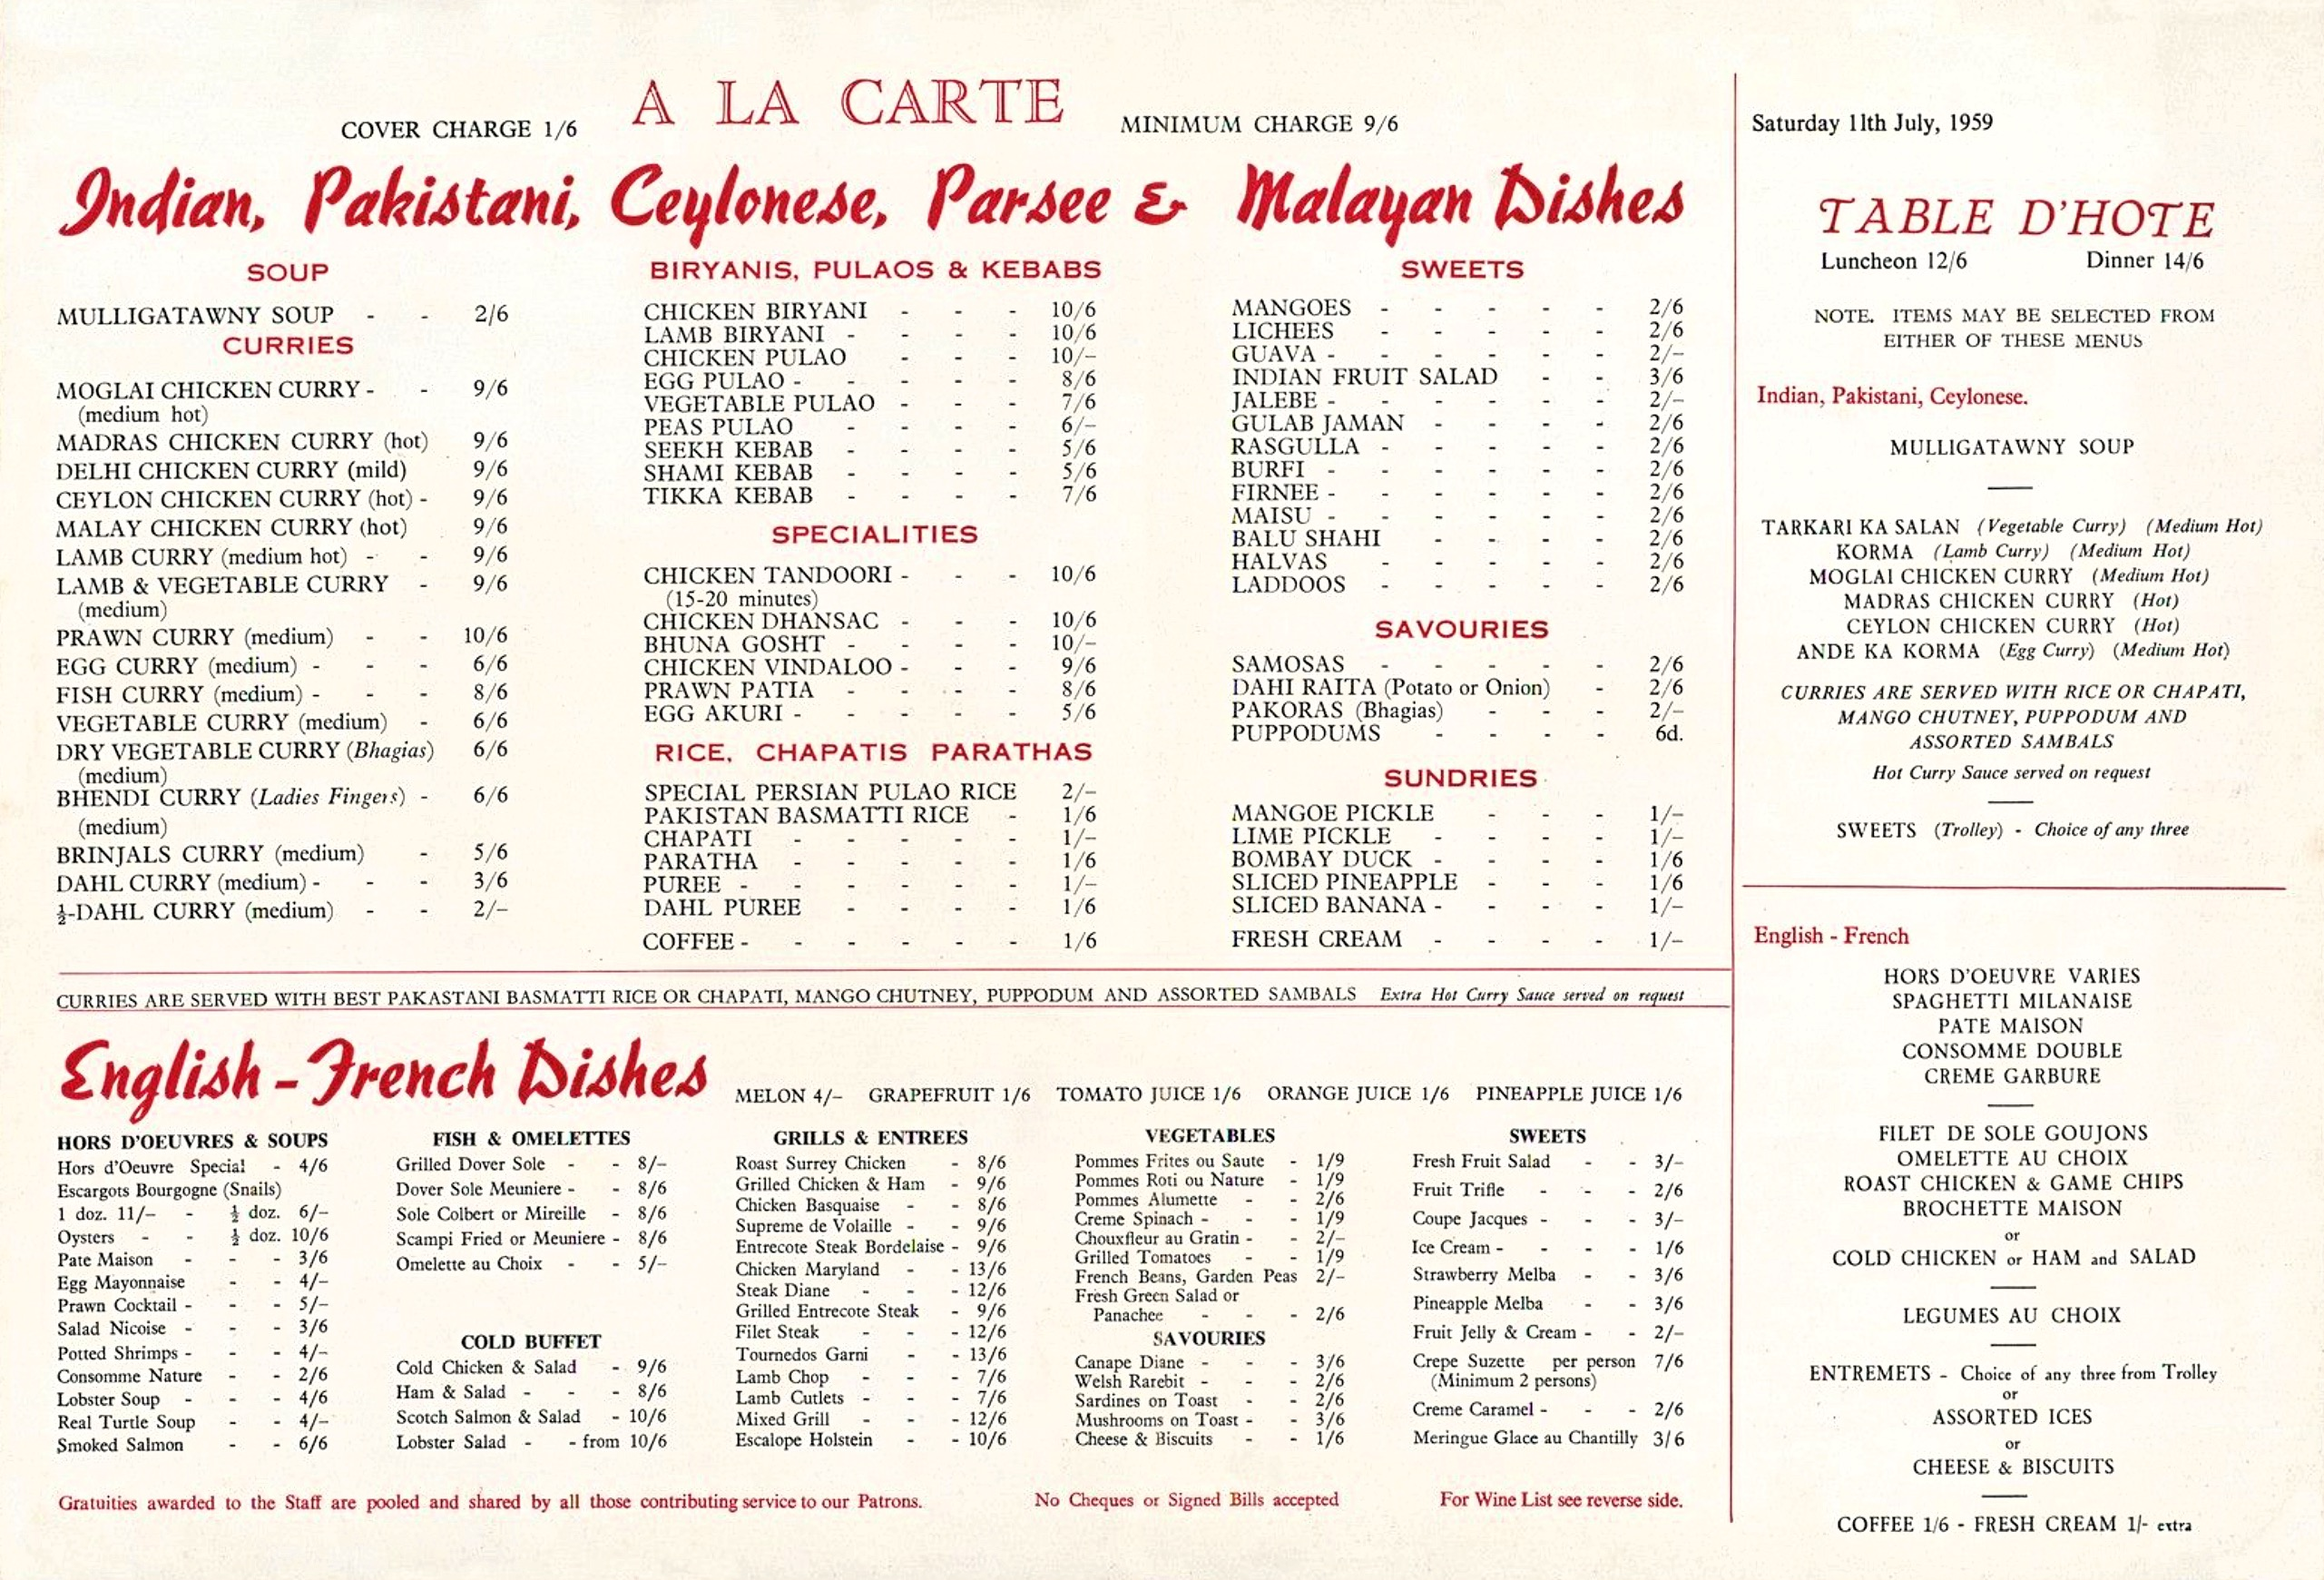 Old menu for Veeraswamy, London 1959